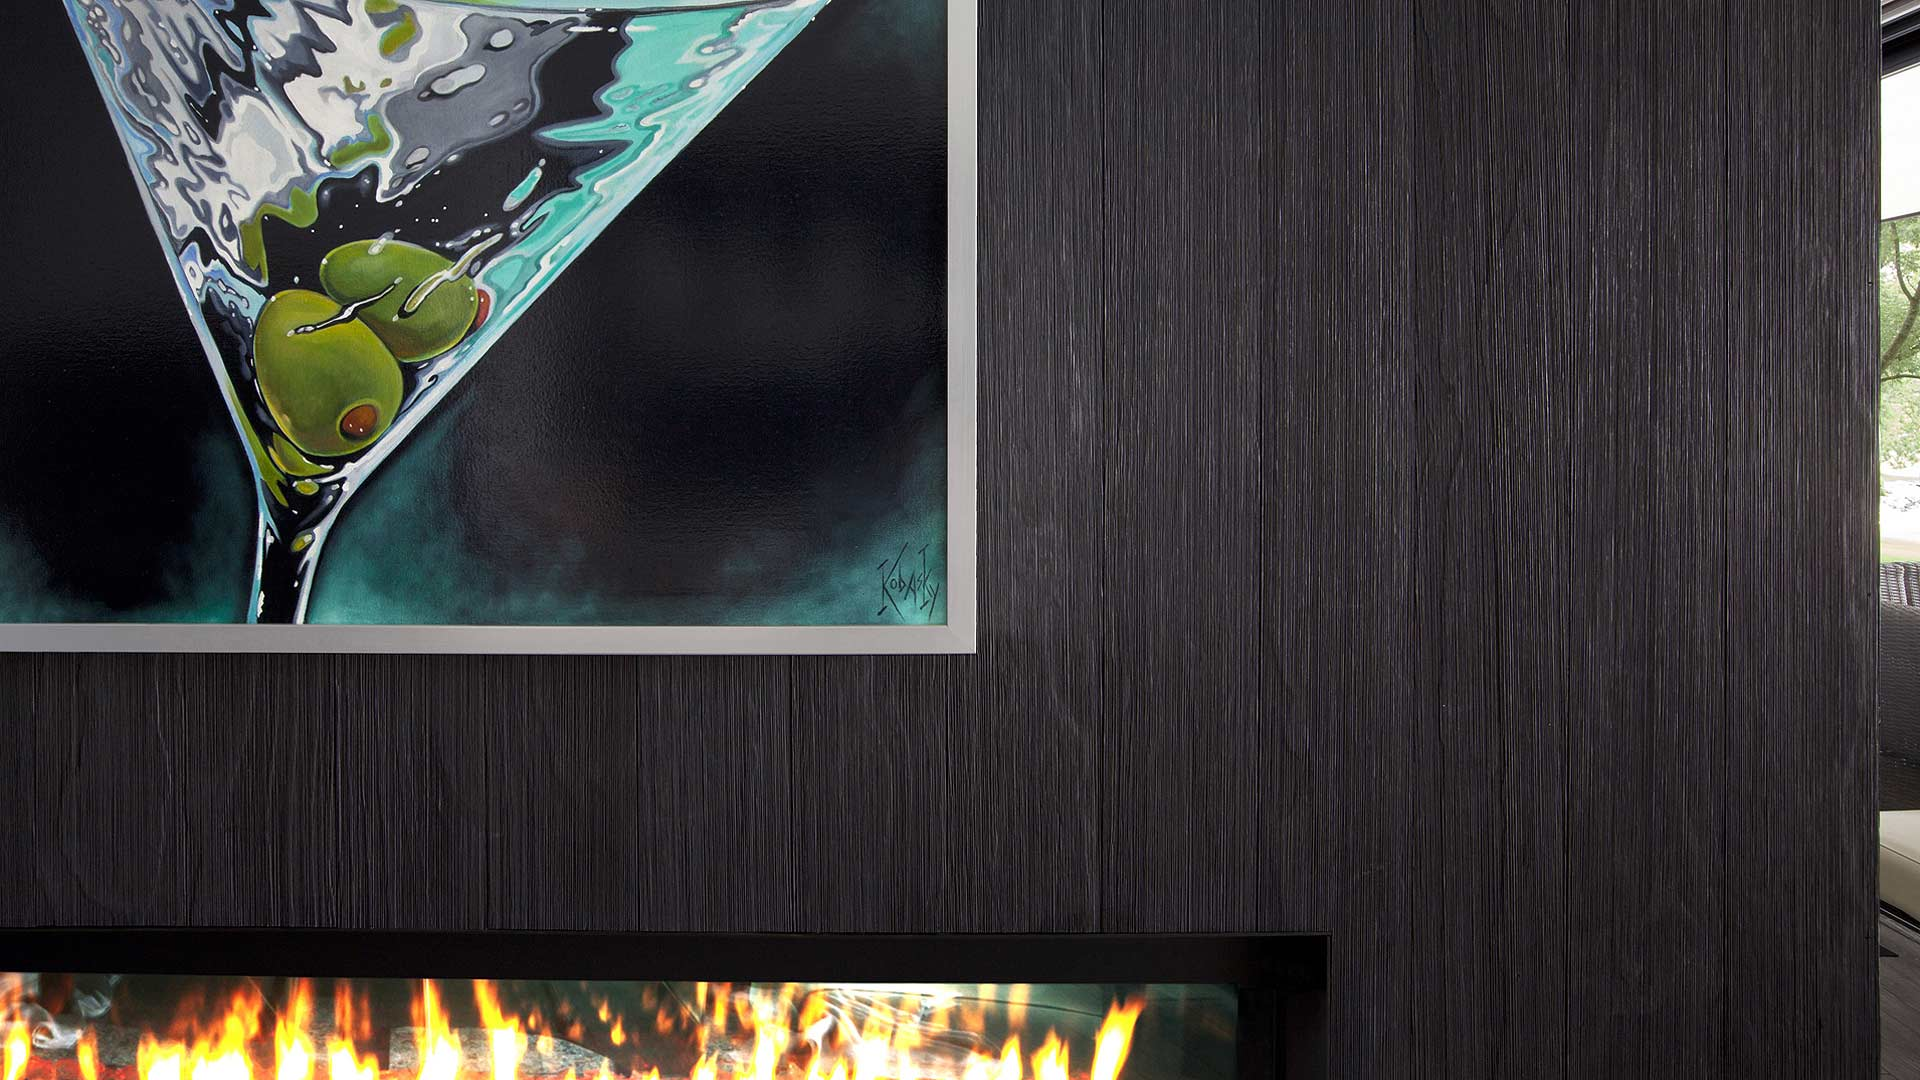 modern gas fireplace clad in shou sugi ban siding, black charred siding, martini arwork - Lakeside Modern Cottage (H-LODGE) - Unionville, Indiana, Lake Lemon